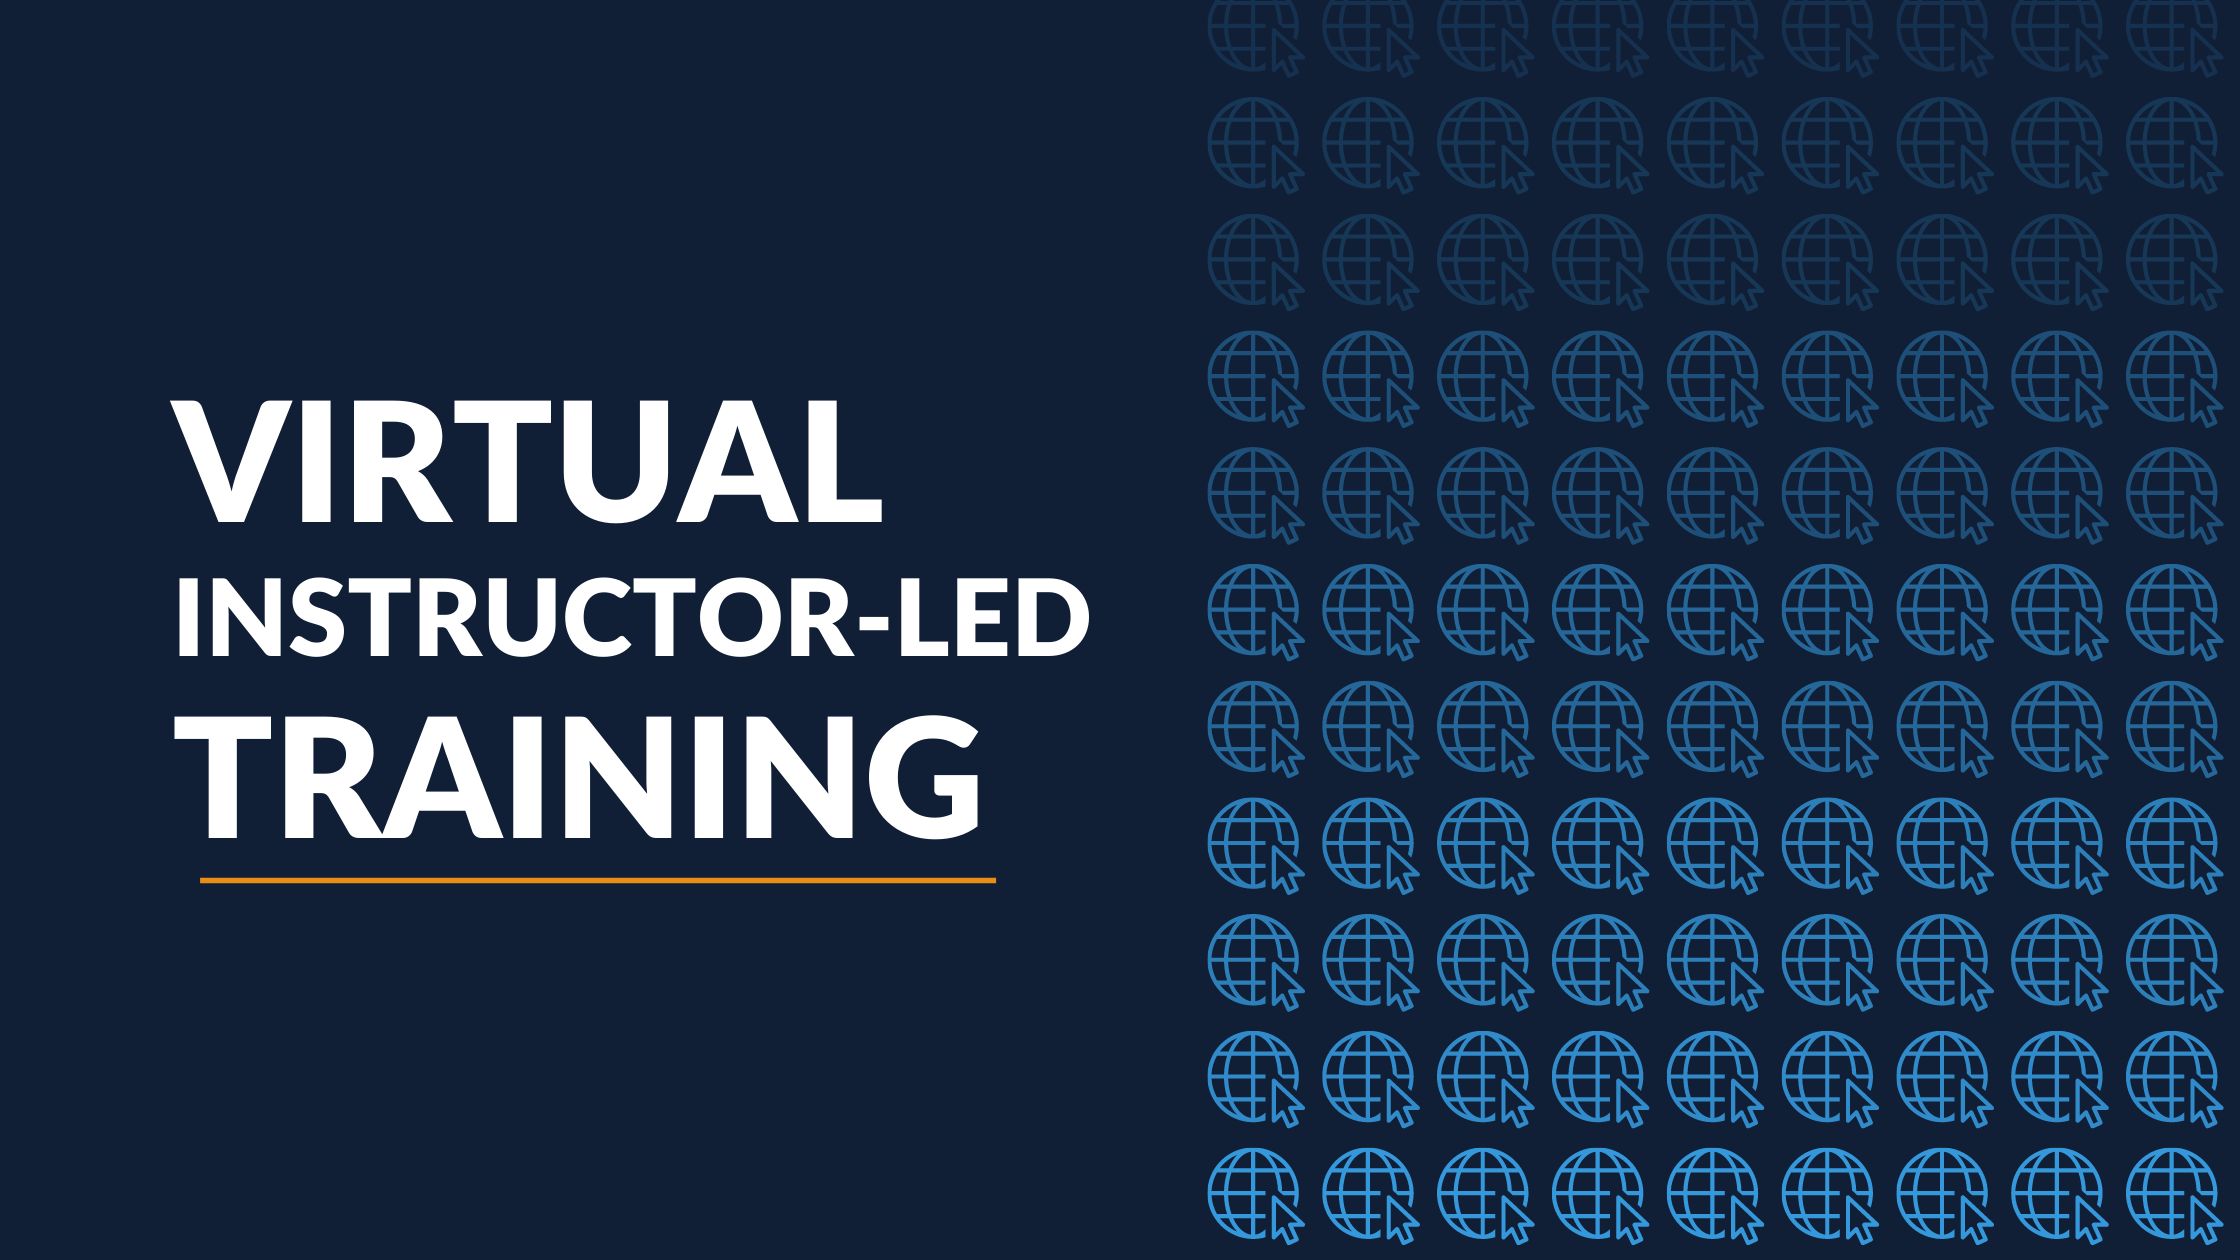 All About Virtual Instructor-Led Training (VILT)